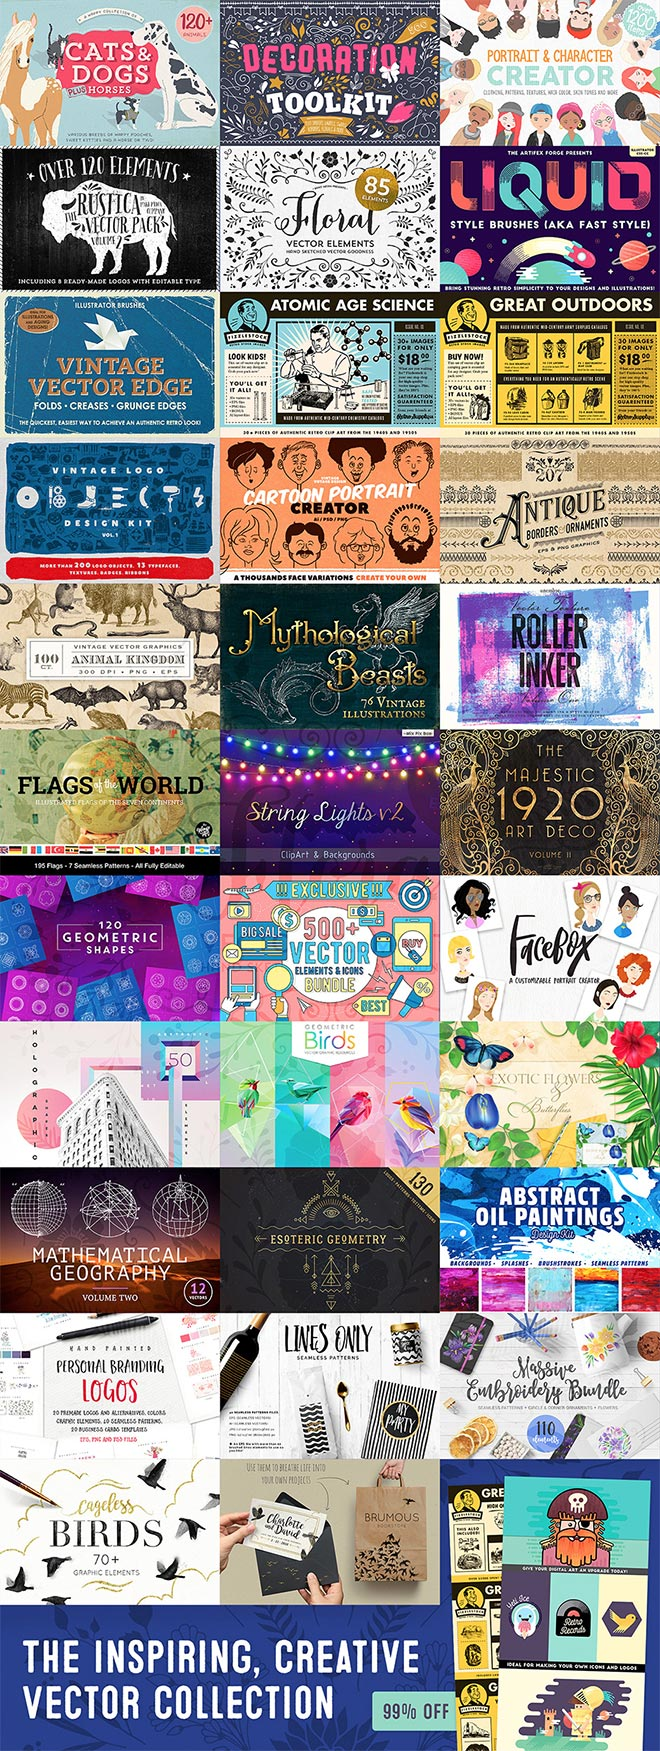 The Inspiring, Creative Vector Collection